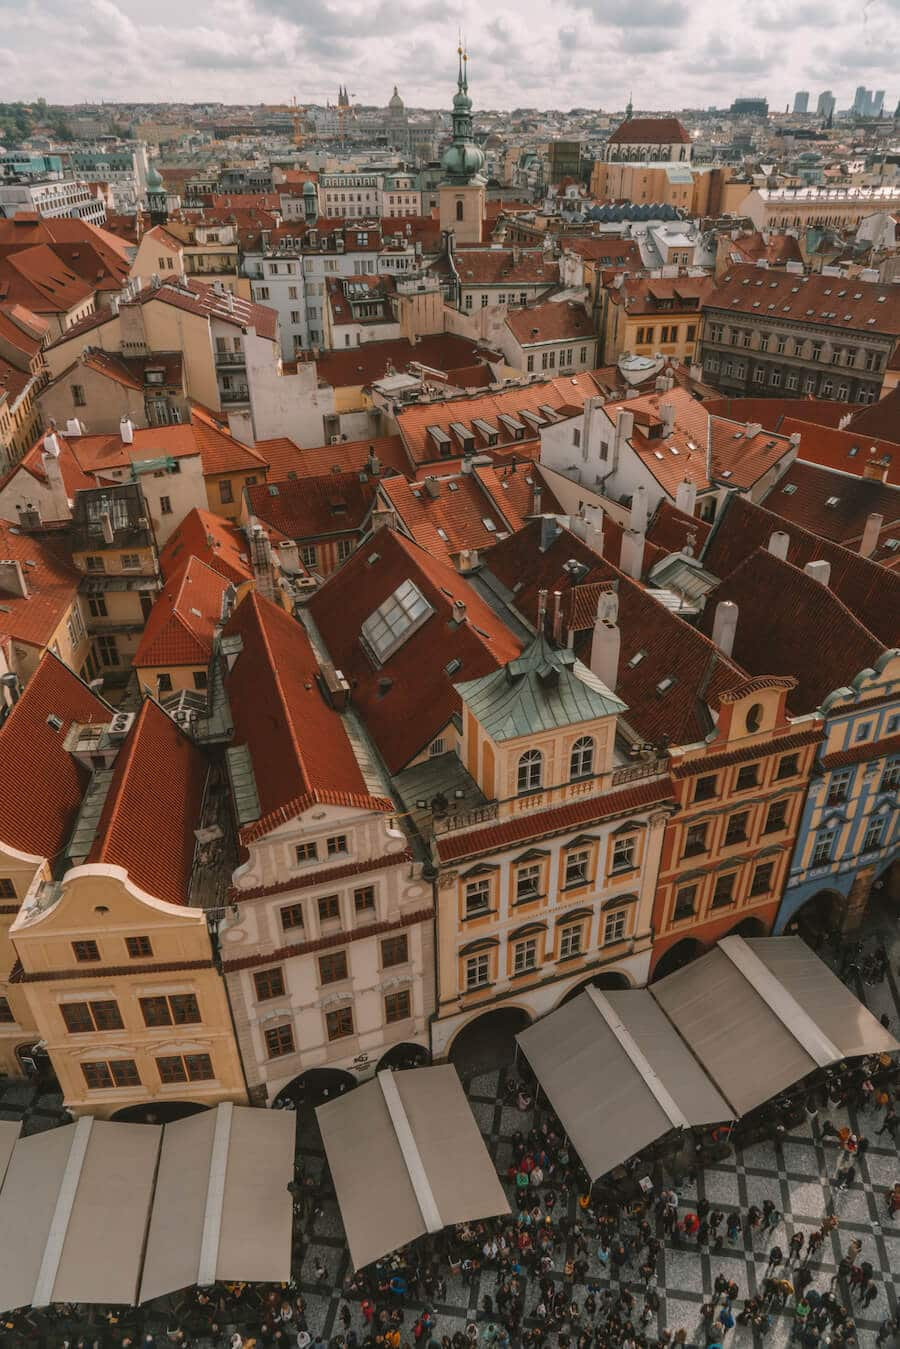 Views overlooking the red rooftops of Prague